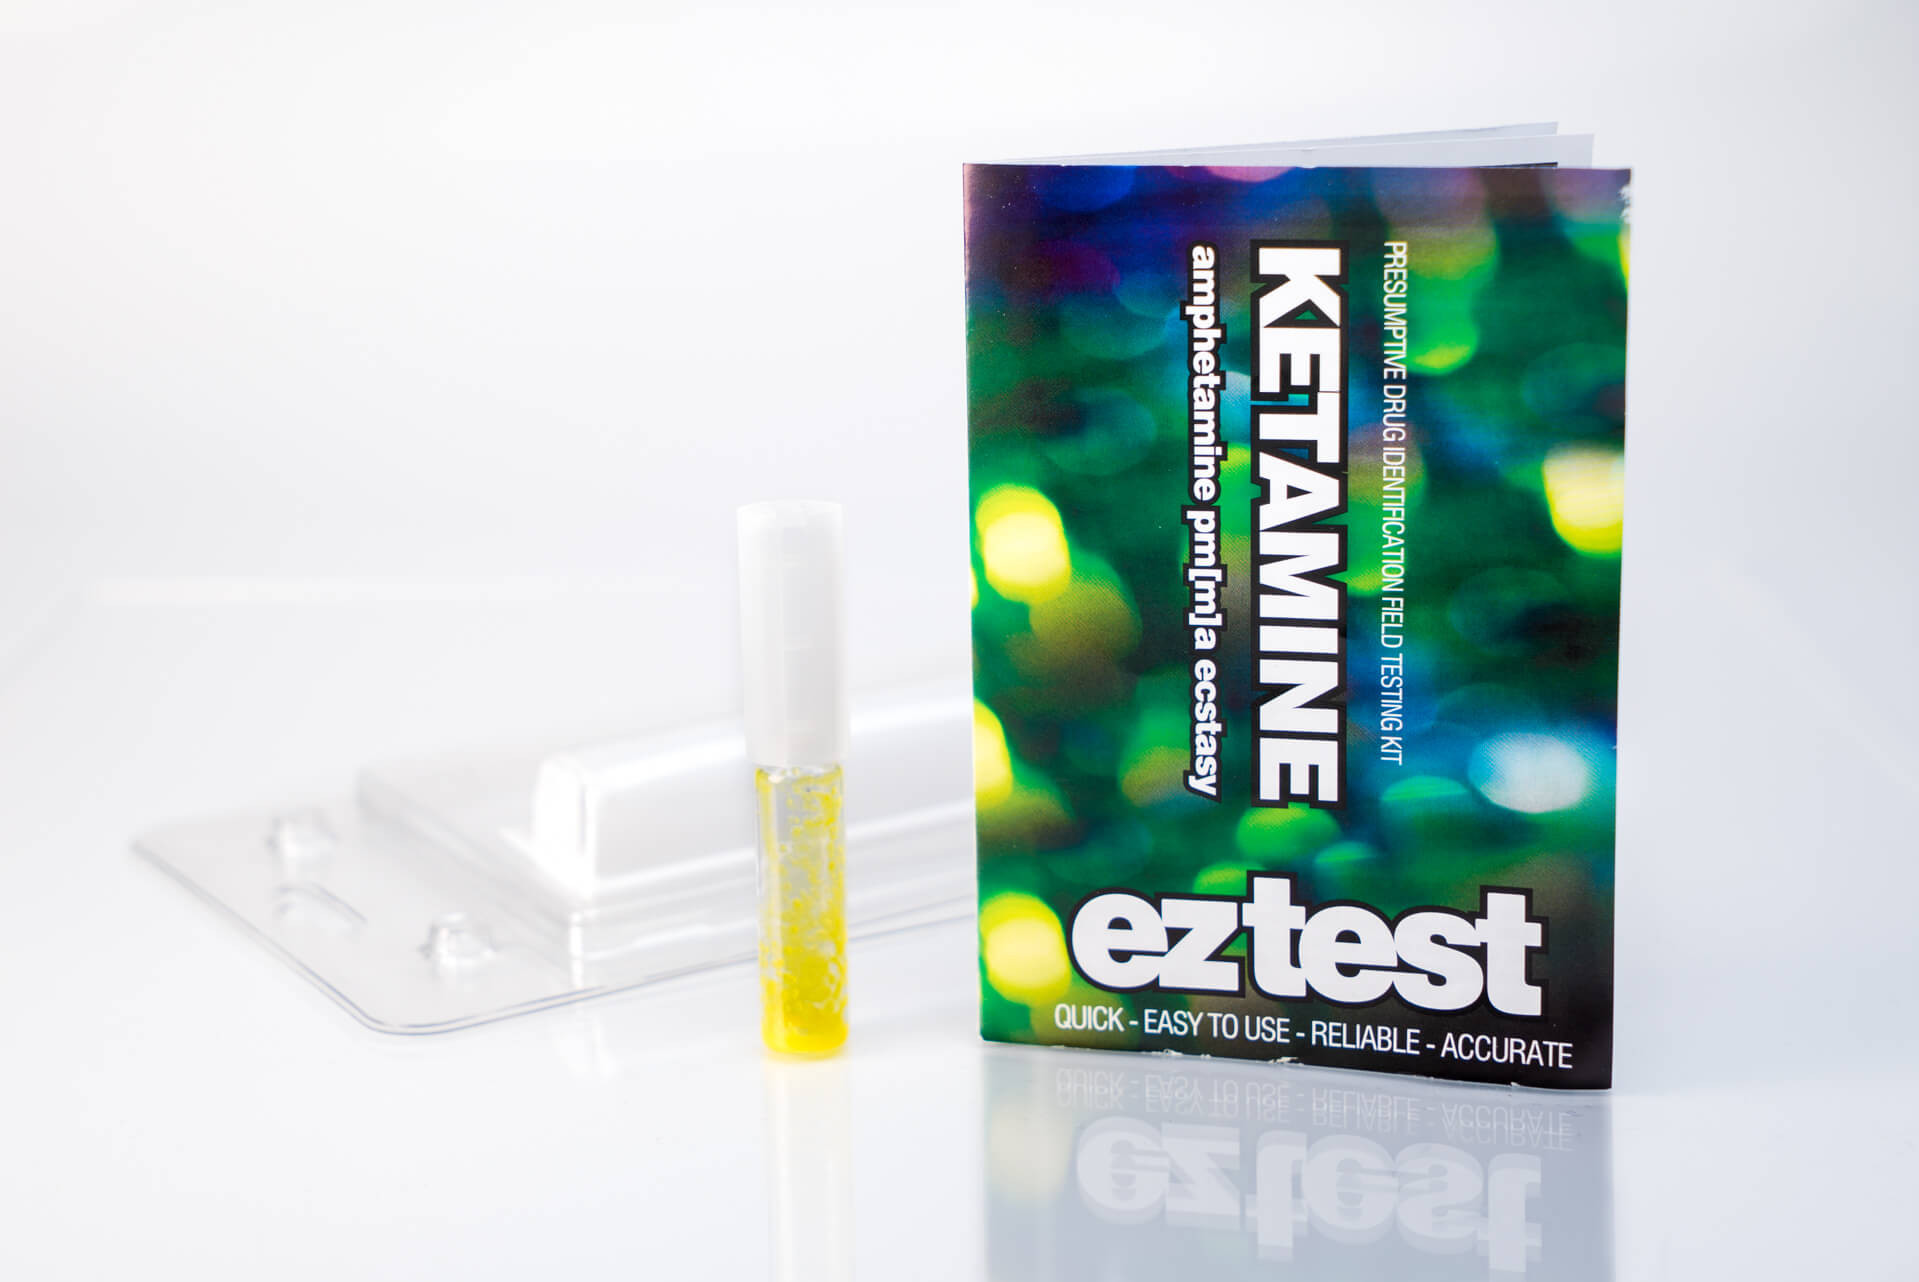 Kit Test Droga Chetamina Monouso